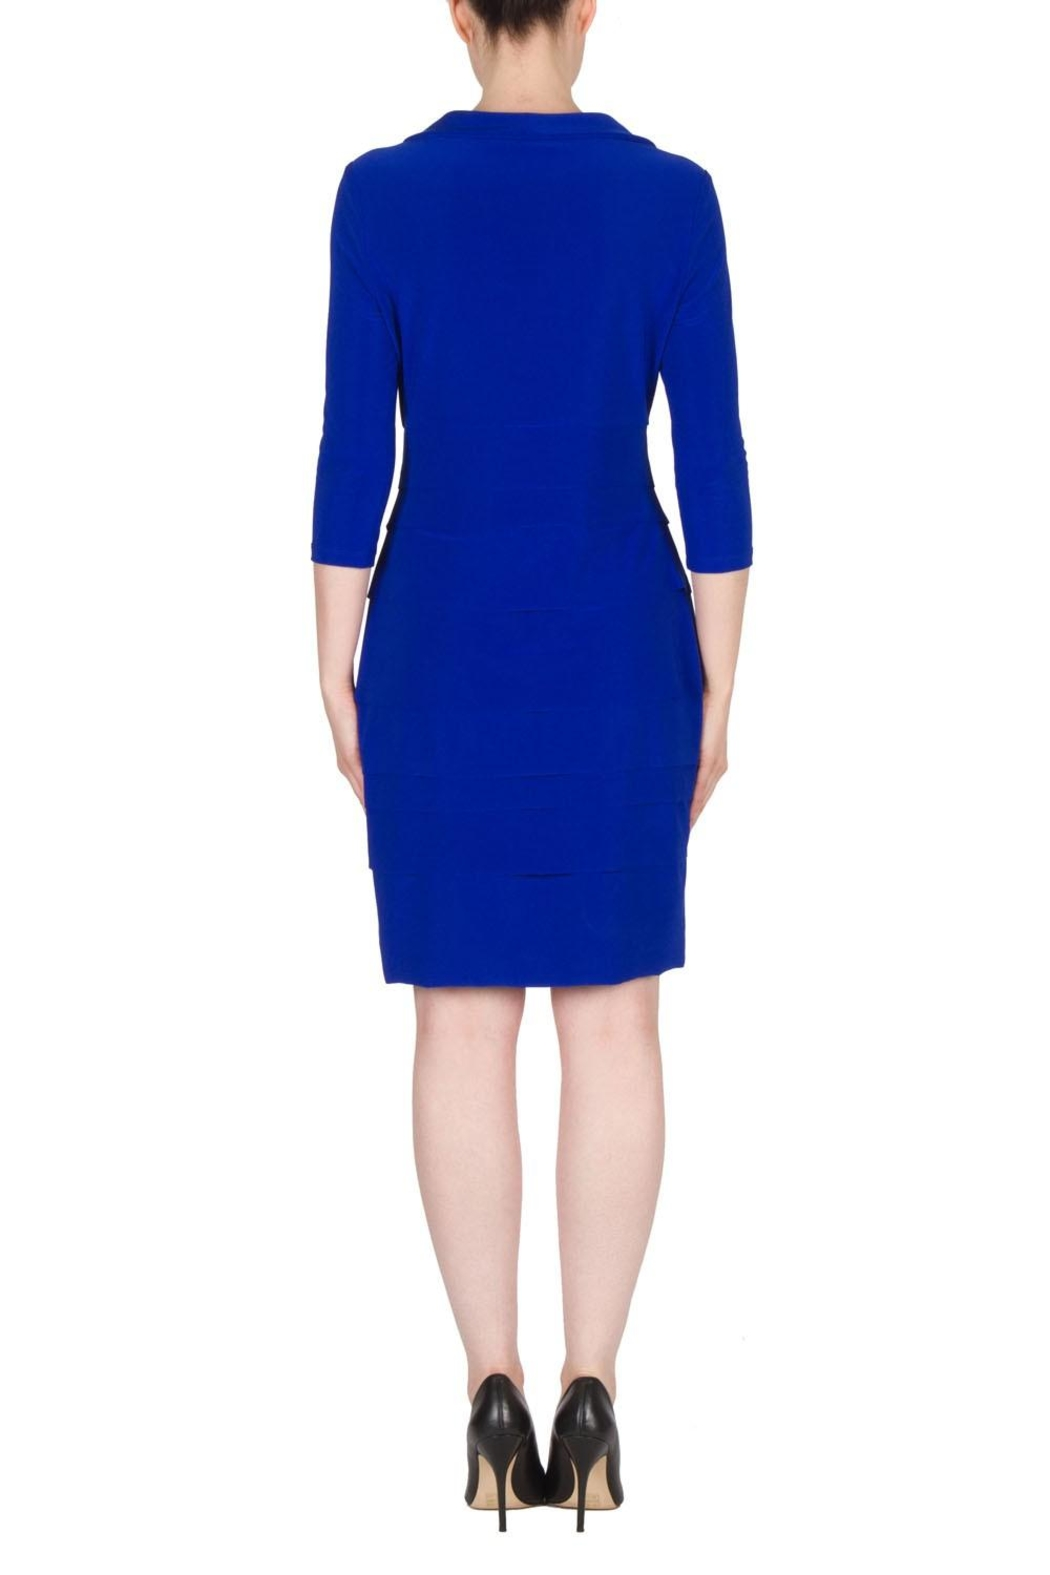 Joseph Ribkoff Royal Layered Dress - Side Cropped Image